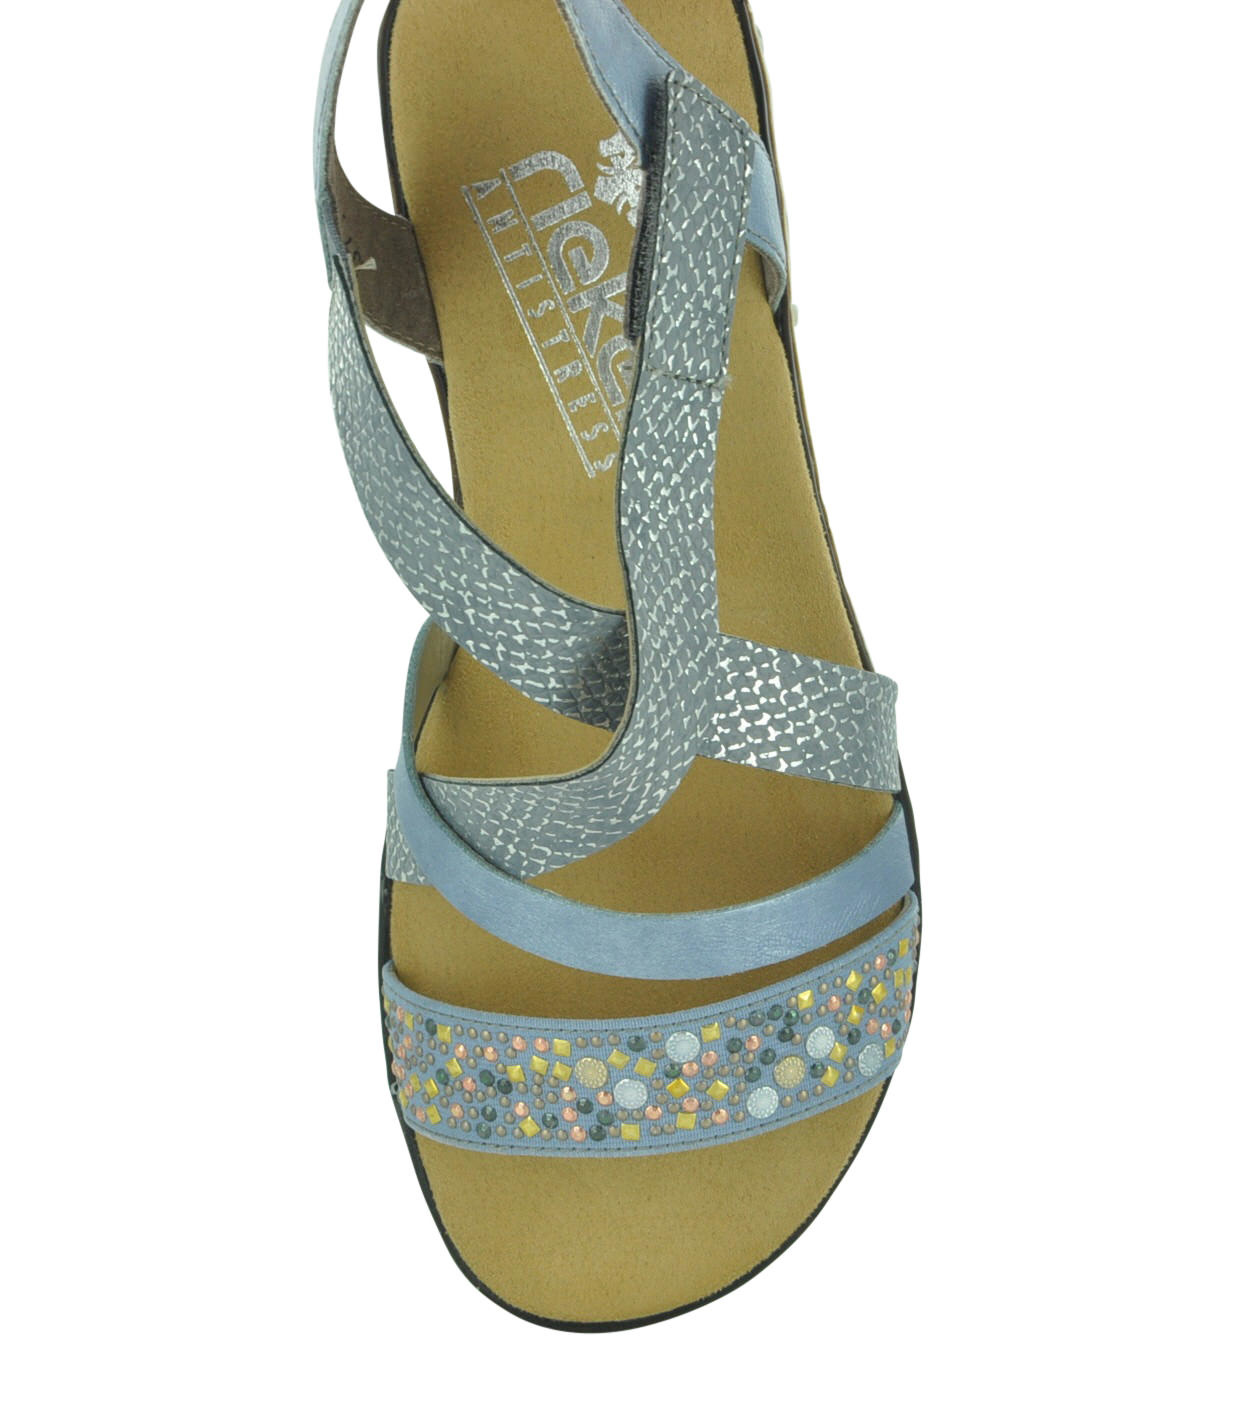 sports shoes 28bb0 a06c4 Rieker V3663 Women's Strappy Sandals